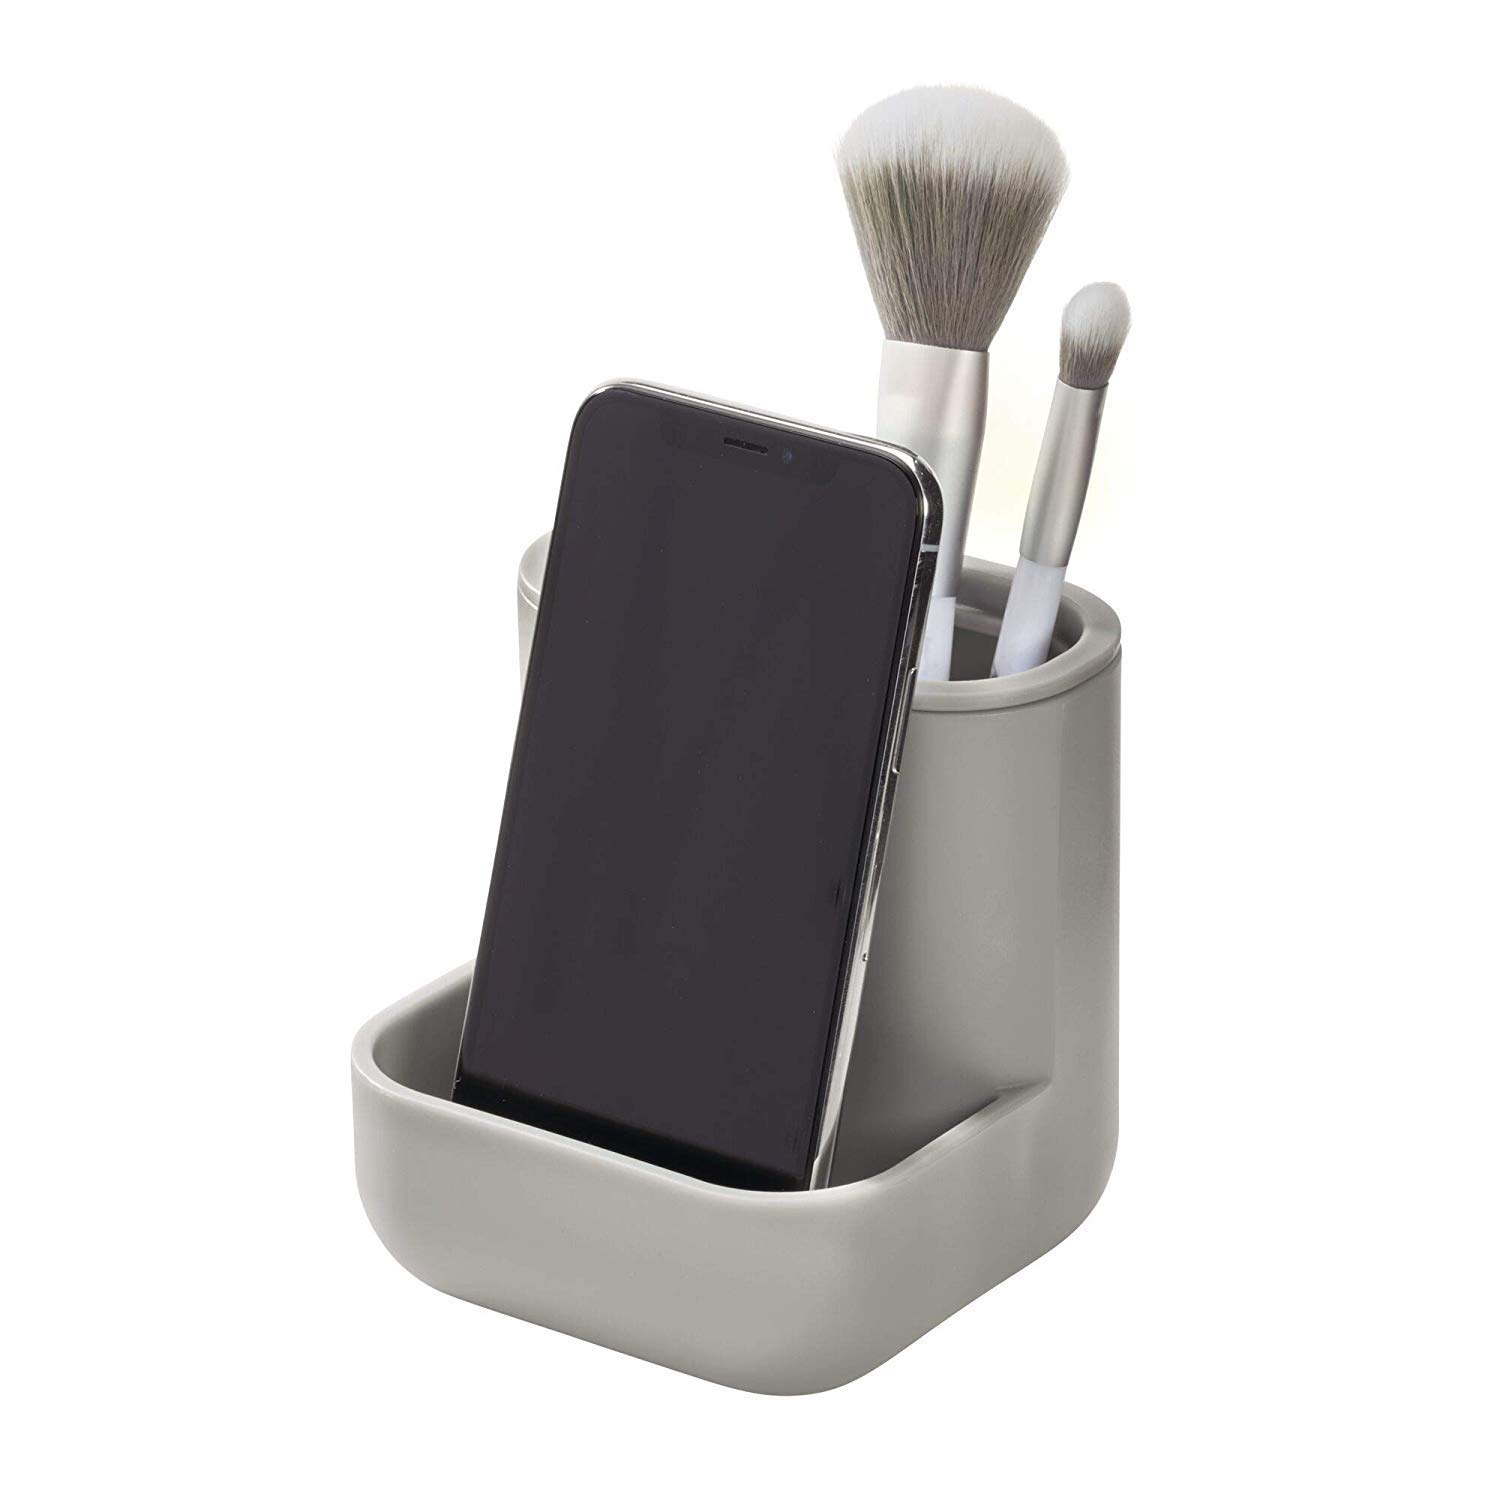 iDesign Cade Plastic Center Perfect for Holding Makeup Brushes, Office Supplies, Jewelry, Cosmetics in Your Drawer, Bathroom, Countertop, Desk, and Vanity, Matte Gray